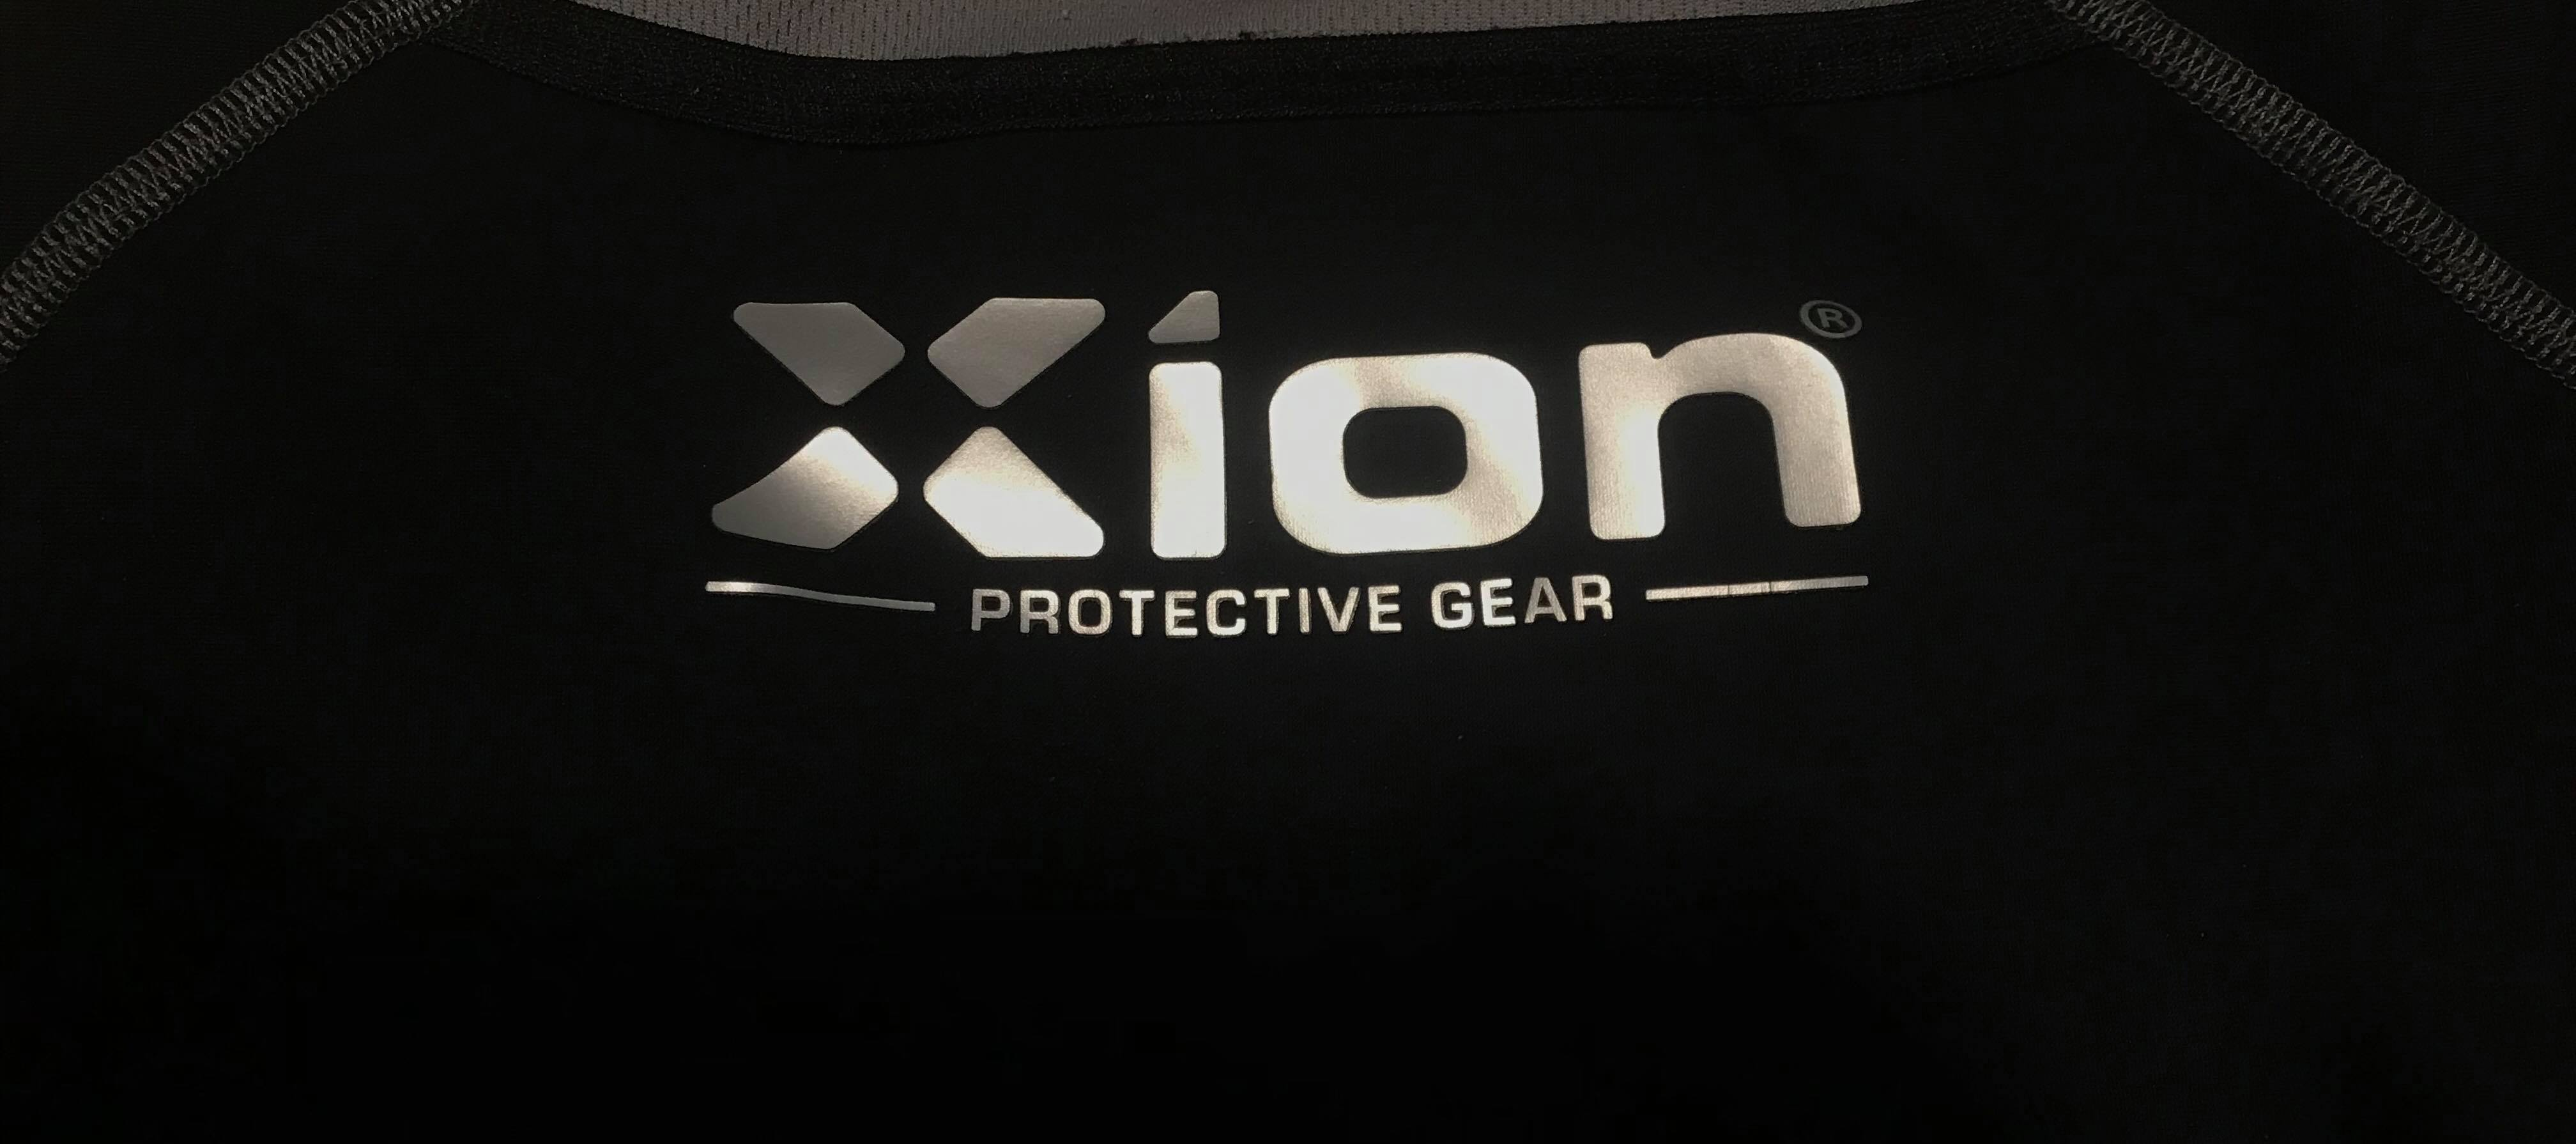 Xion Protective Gear – Gear Review